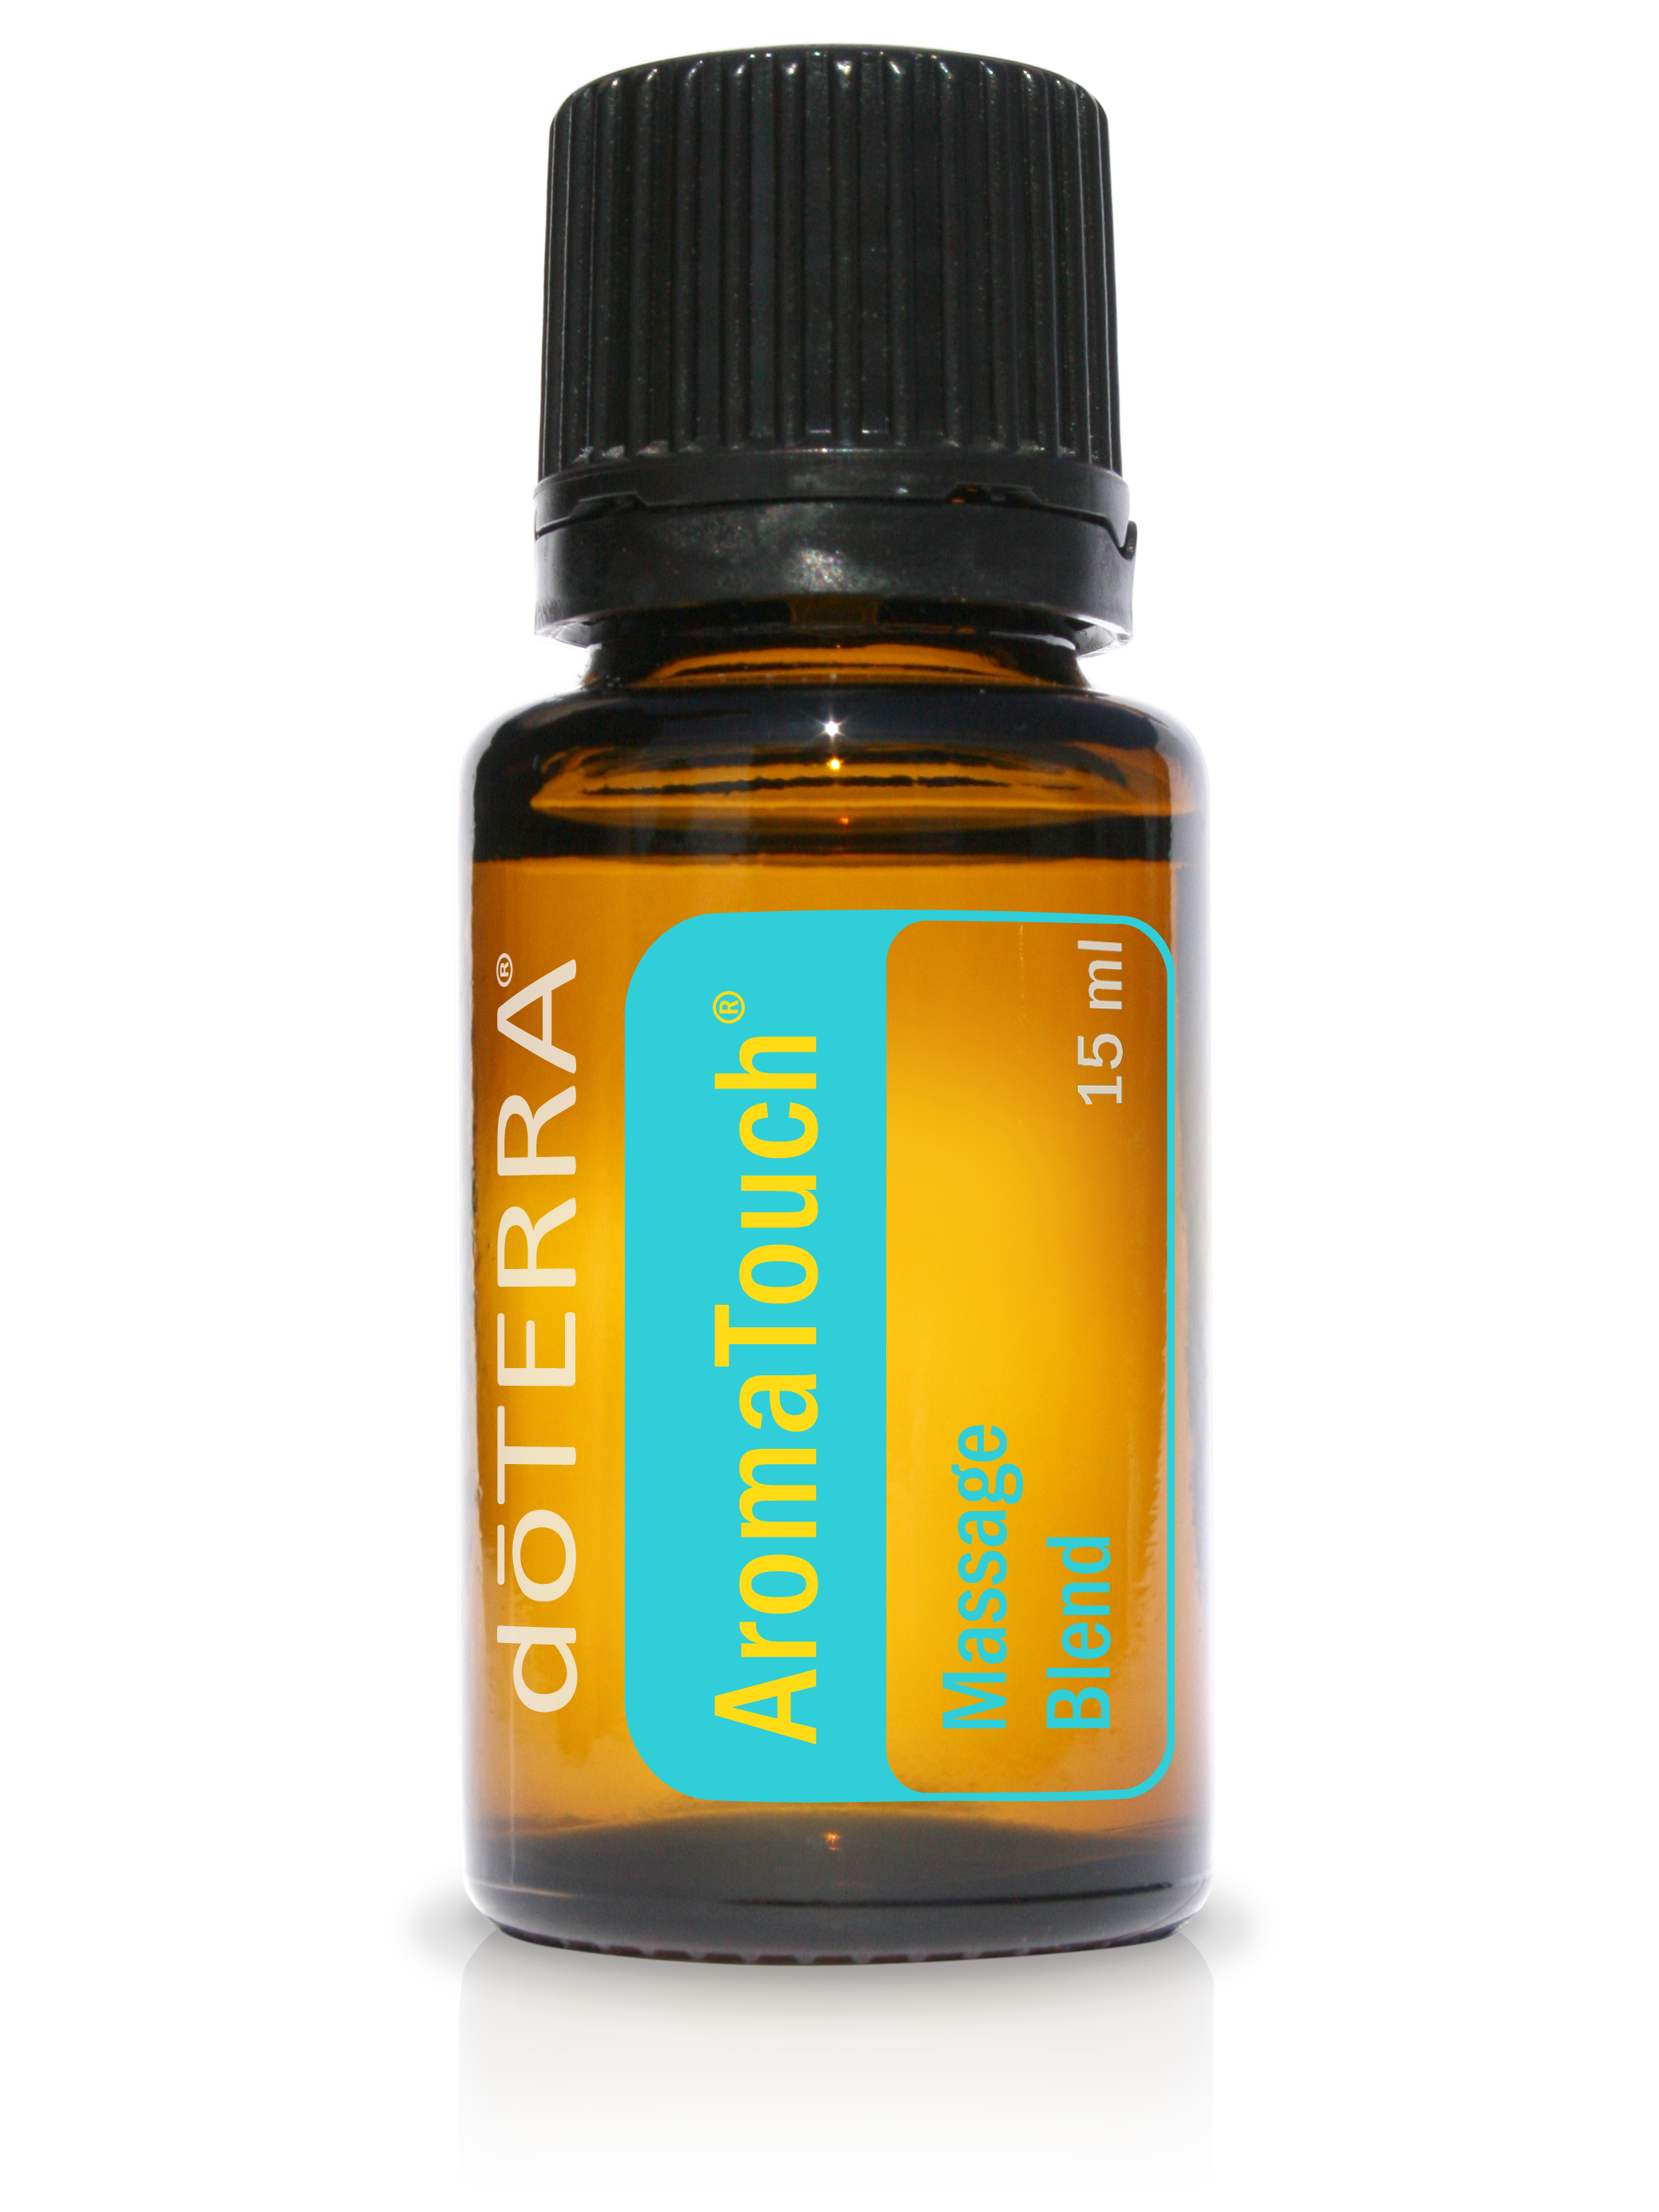 AromaTouch® Essential Oil Blend